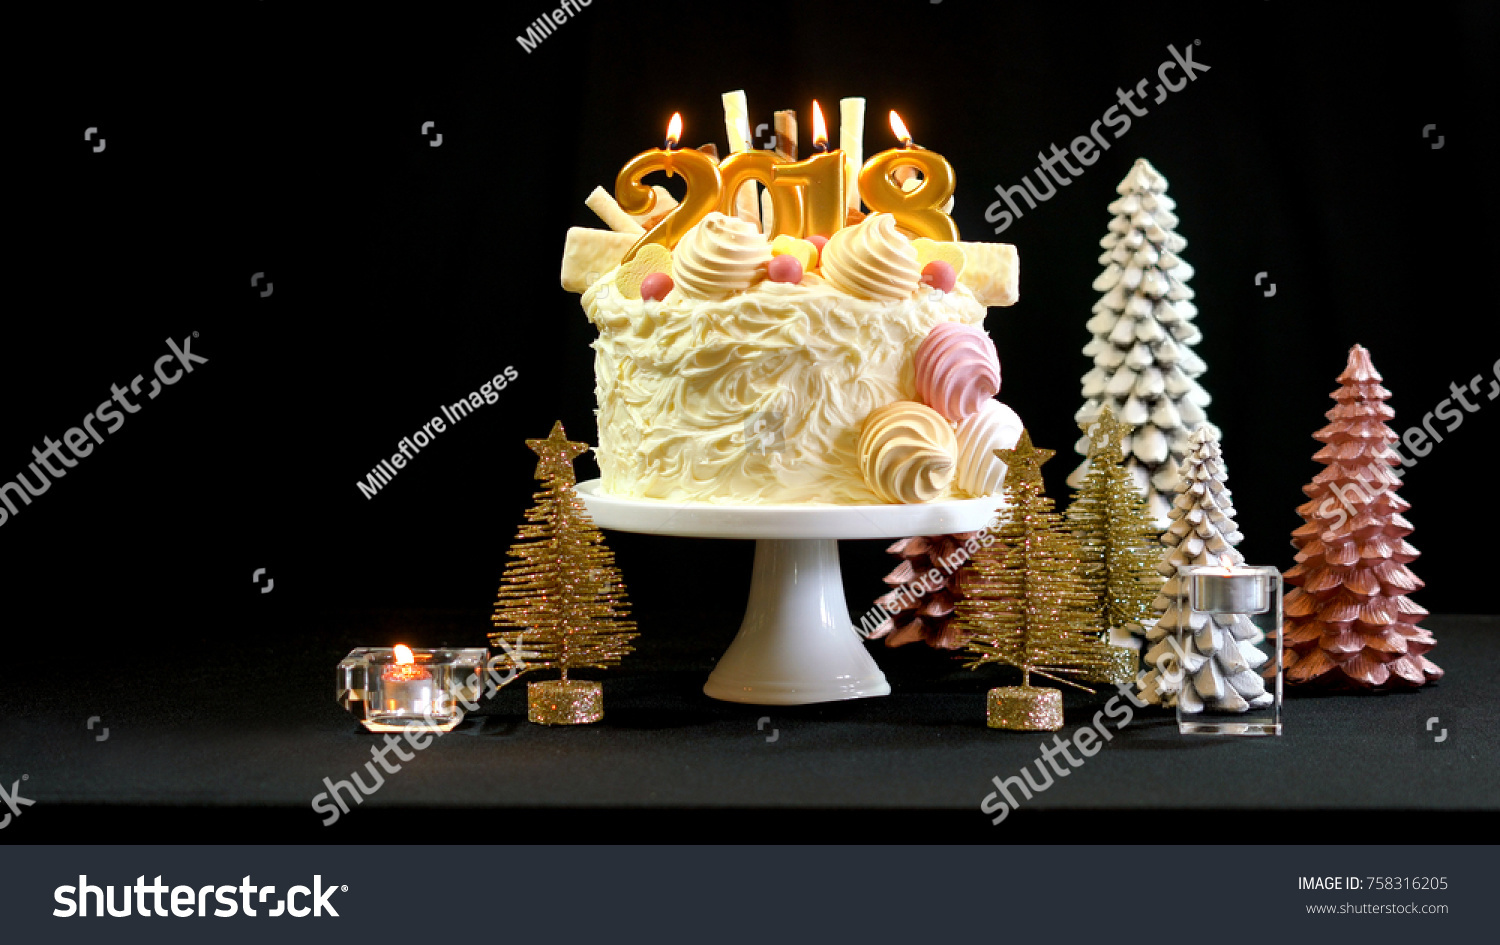 2018 Happy New Year Showstopper Cake Stock Photo 758316205 Shutterstock